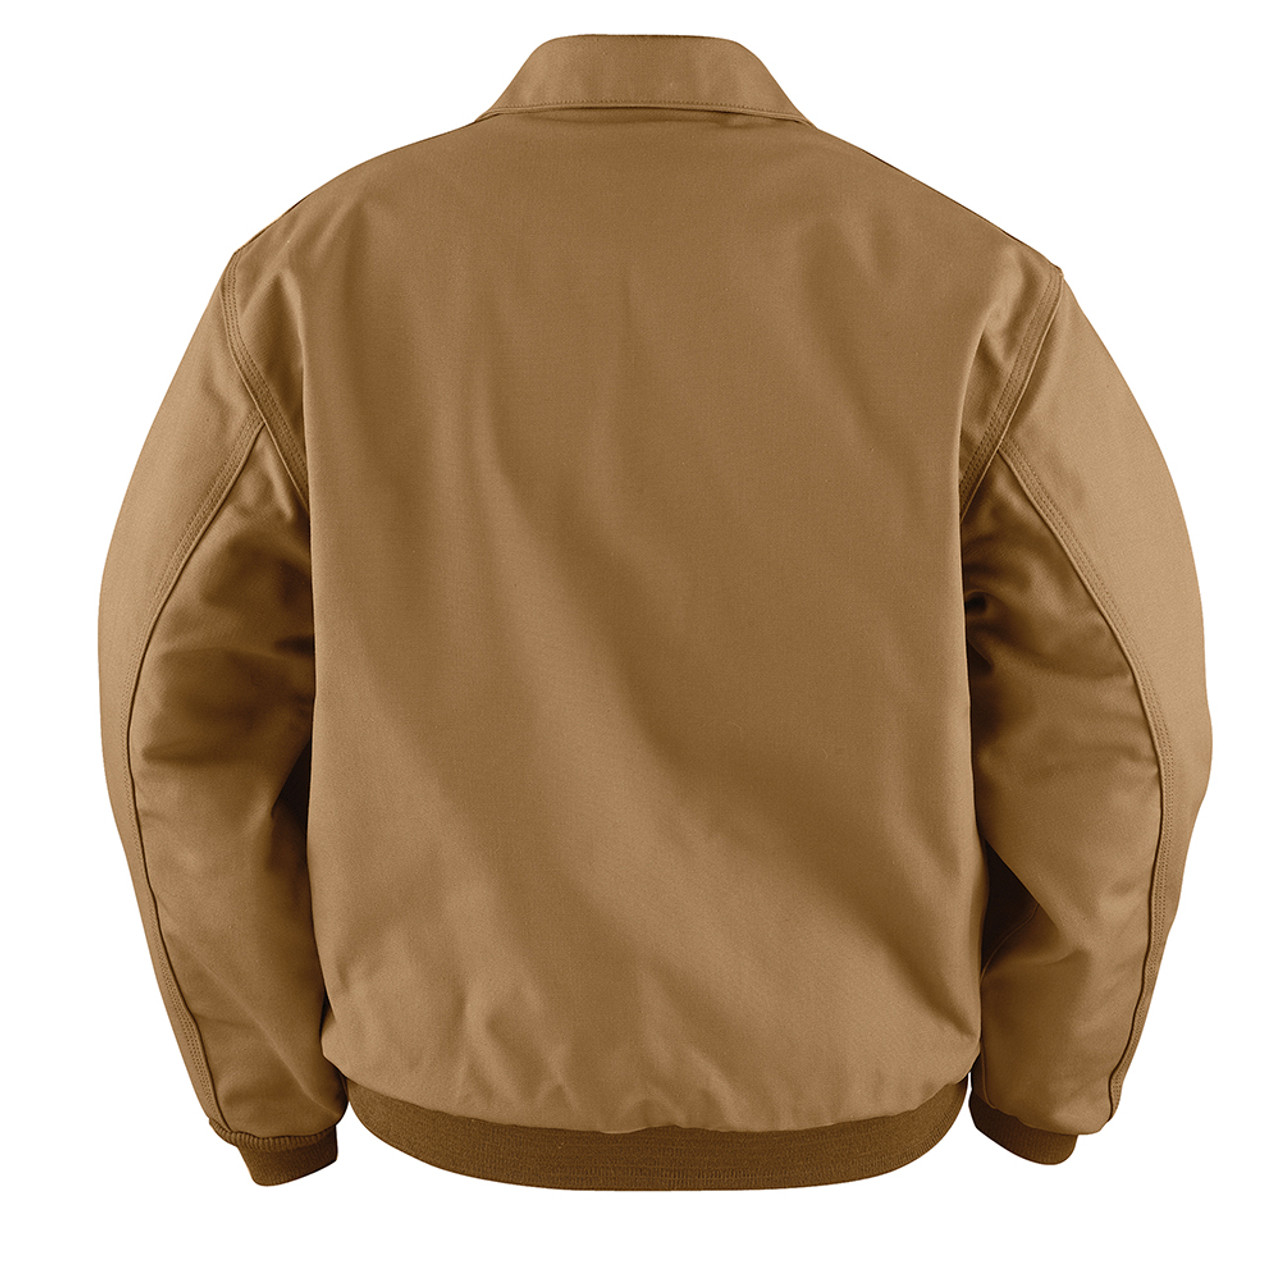 297f710a57a0 101623 Men s Flame Resistant Duck Bomber Jacket